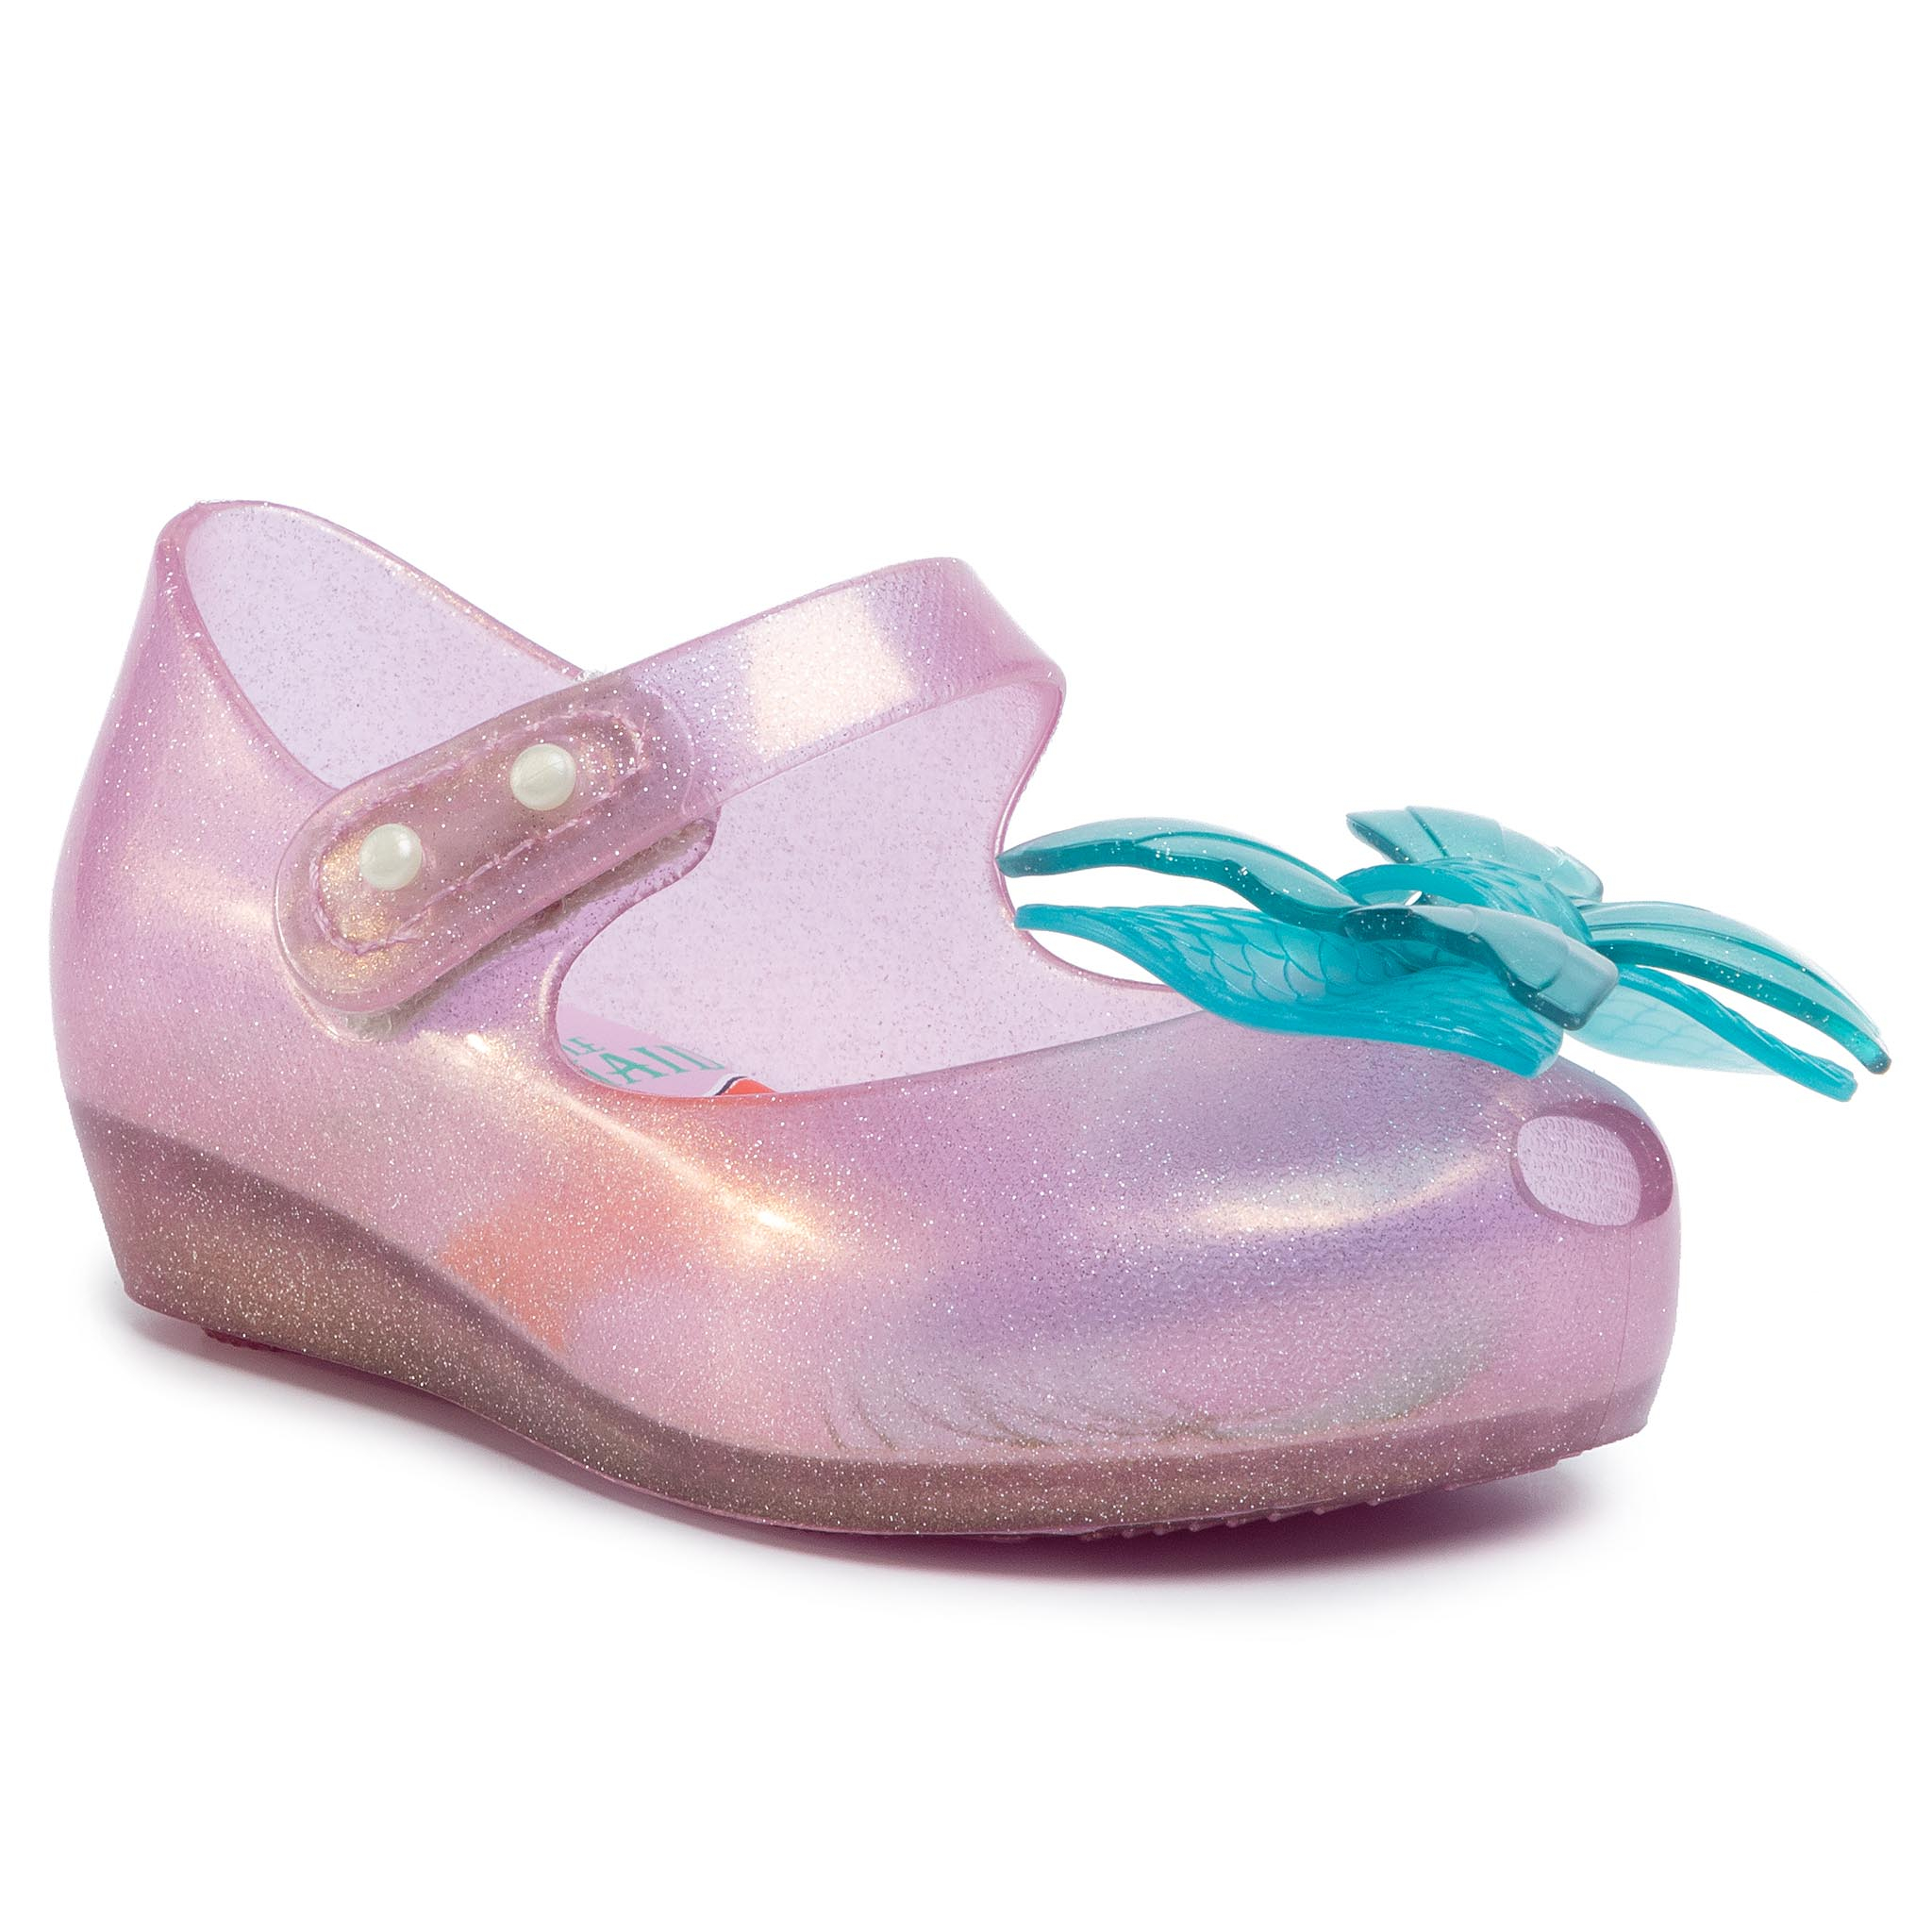 Zapatos MELISSA - Ultragirl + Littl 32783 Pink/Blue 51452